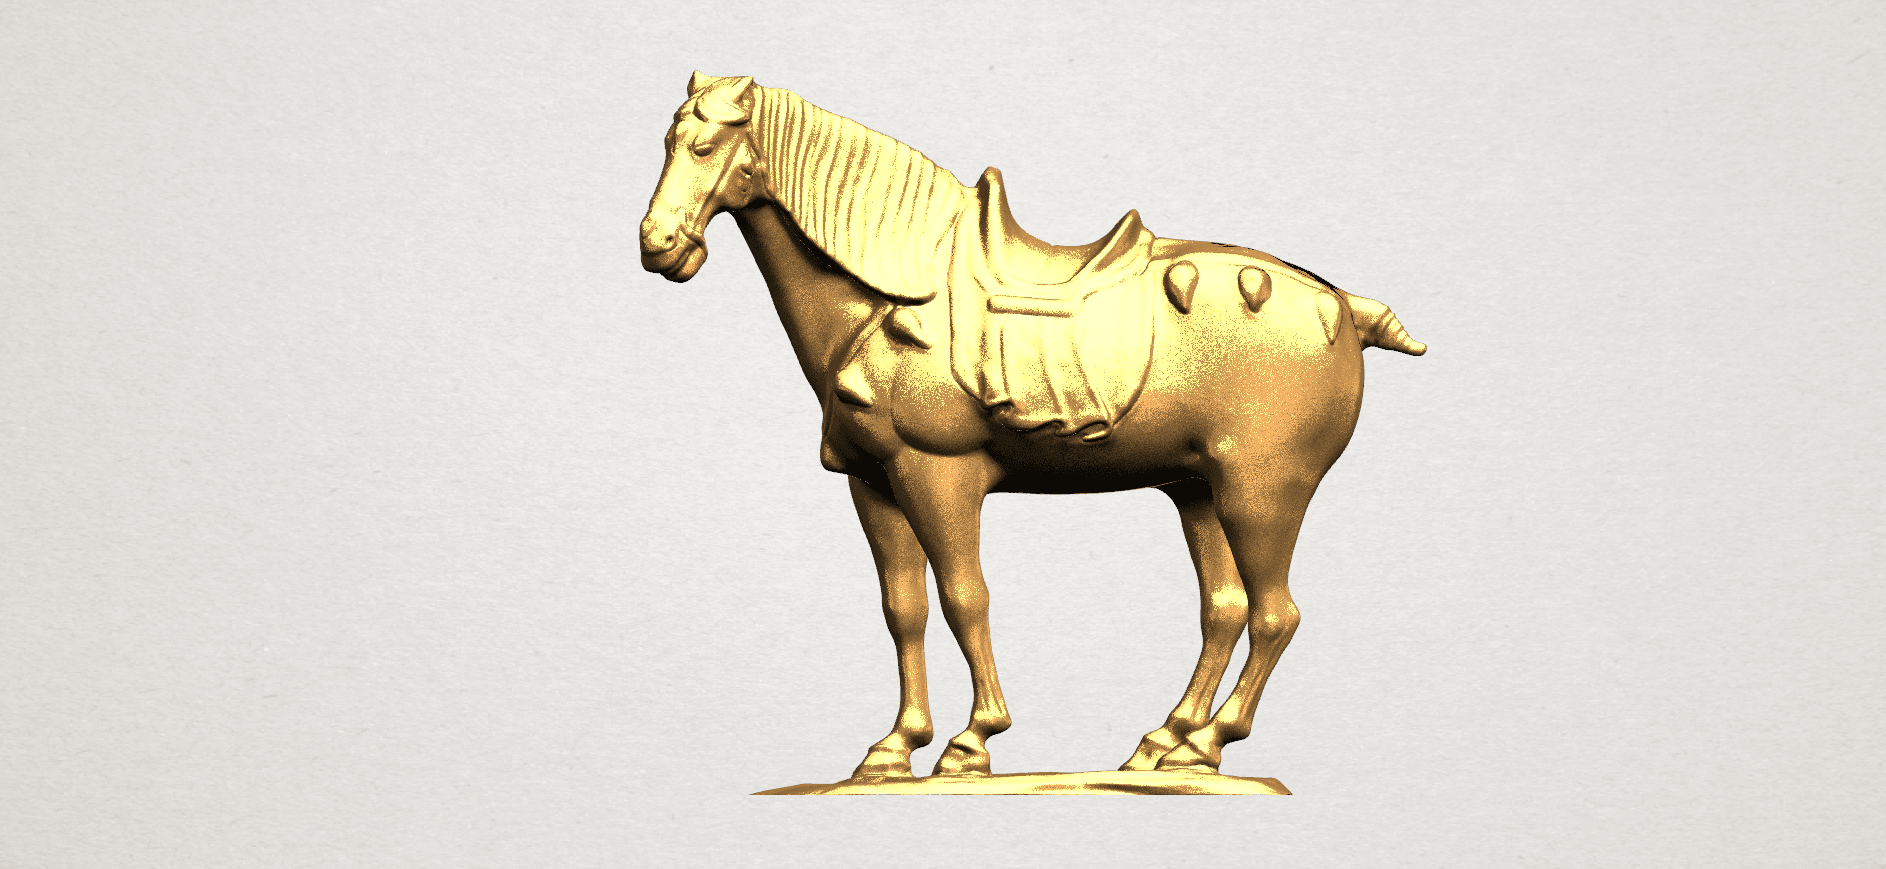 Horse (iv) A01.png Download free STL file Horse 04 • 3D print design, GeorgesNikkei